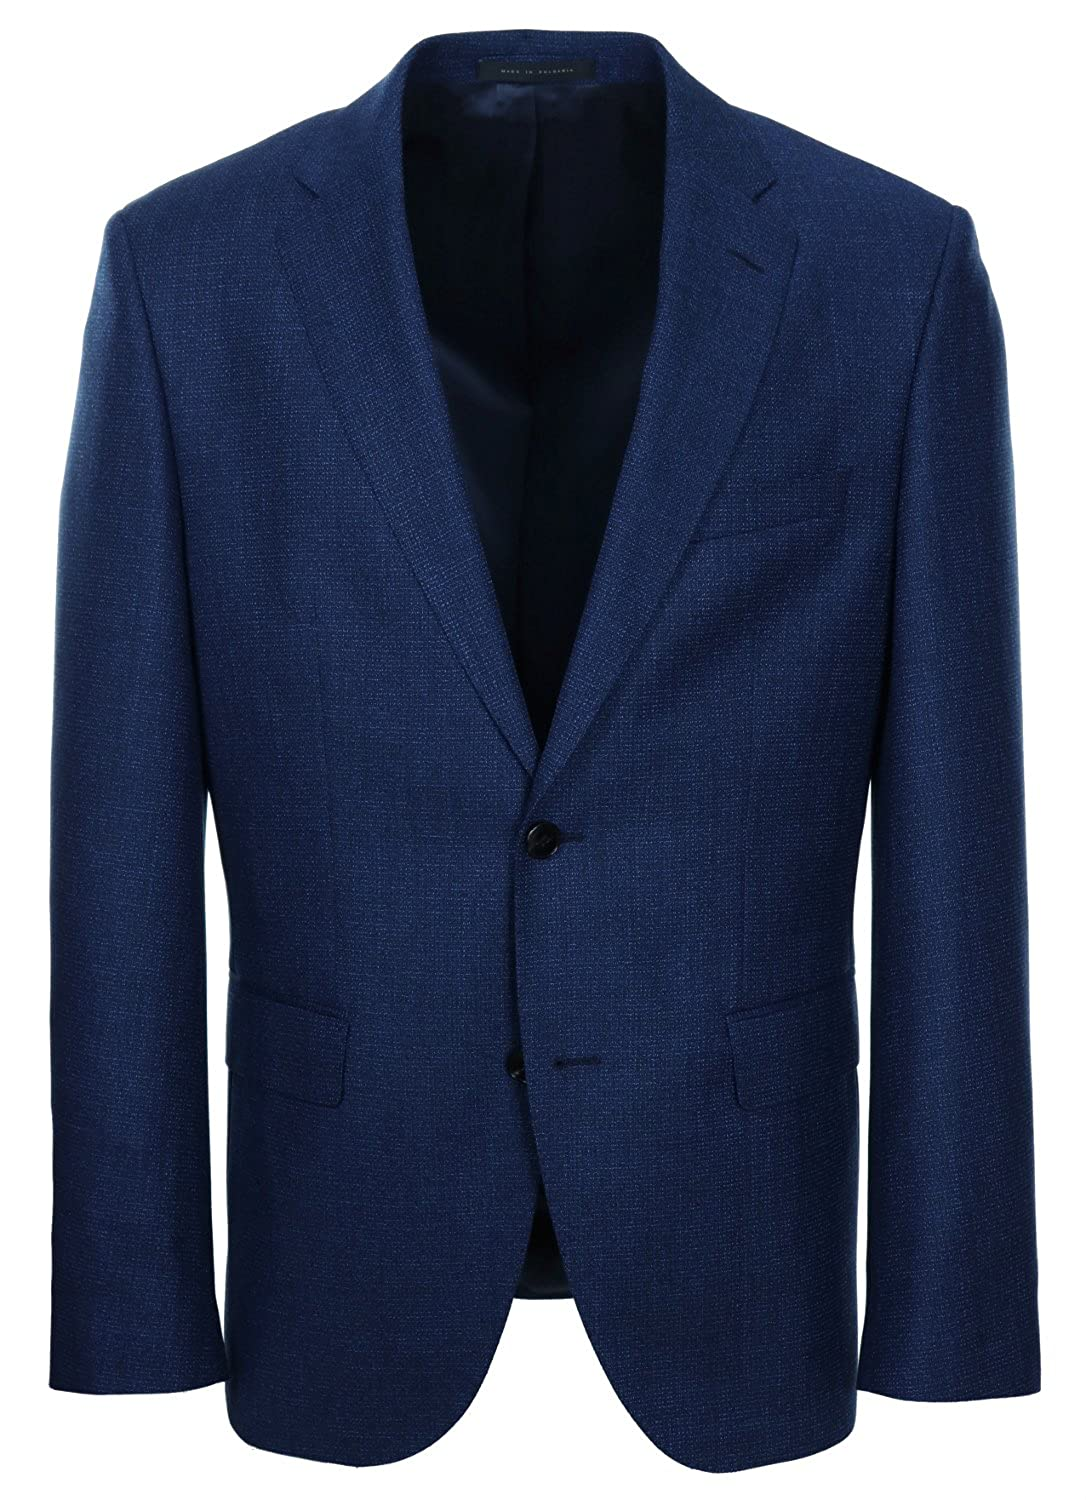 4c1faac3d Amazon.com: Hugo Boss Men's Johnstons/Lenon Trim Fit Blue Mix Suit - 42L  Jacket - 36 Pant: Clothing